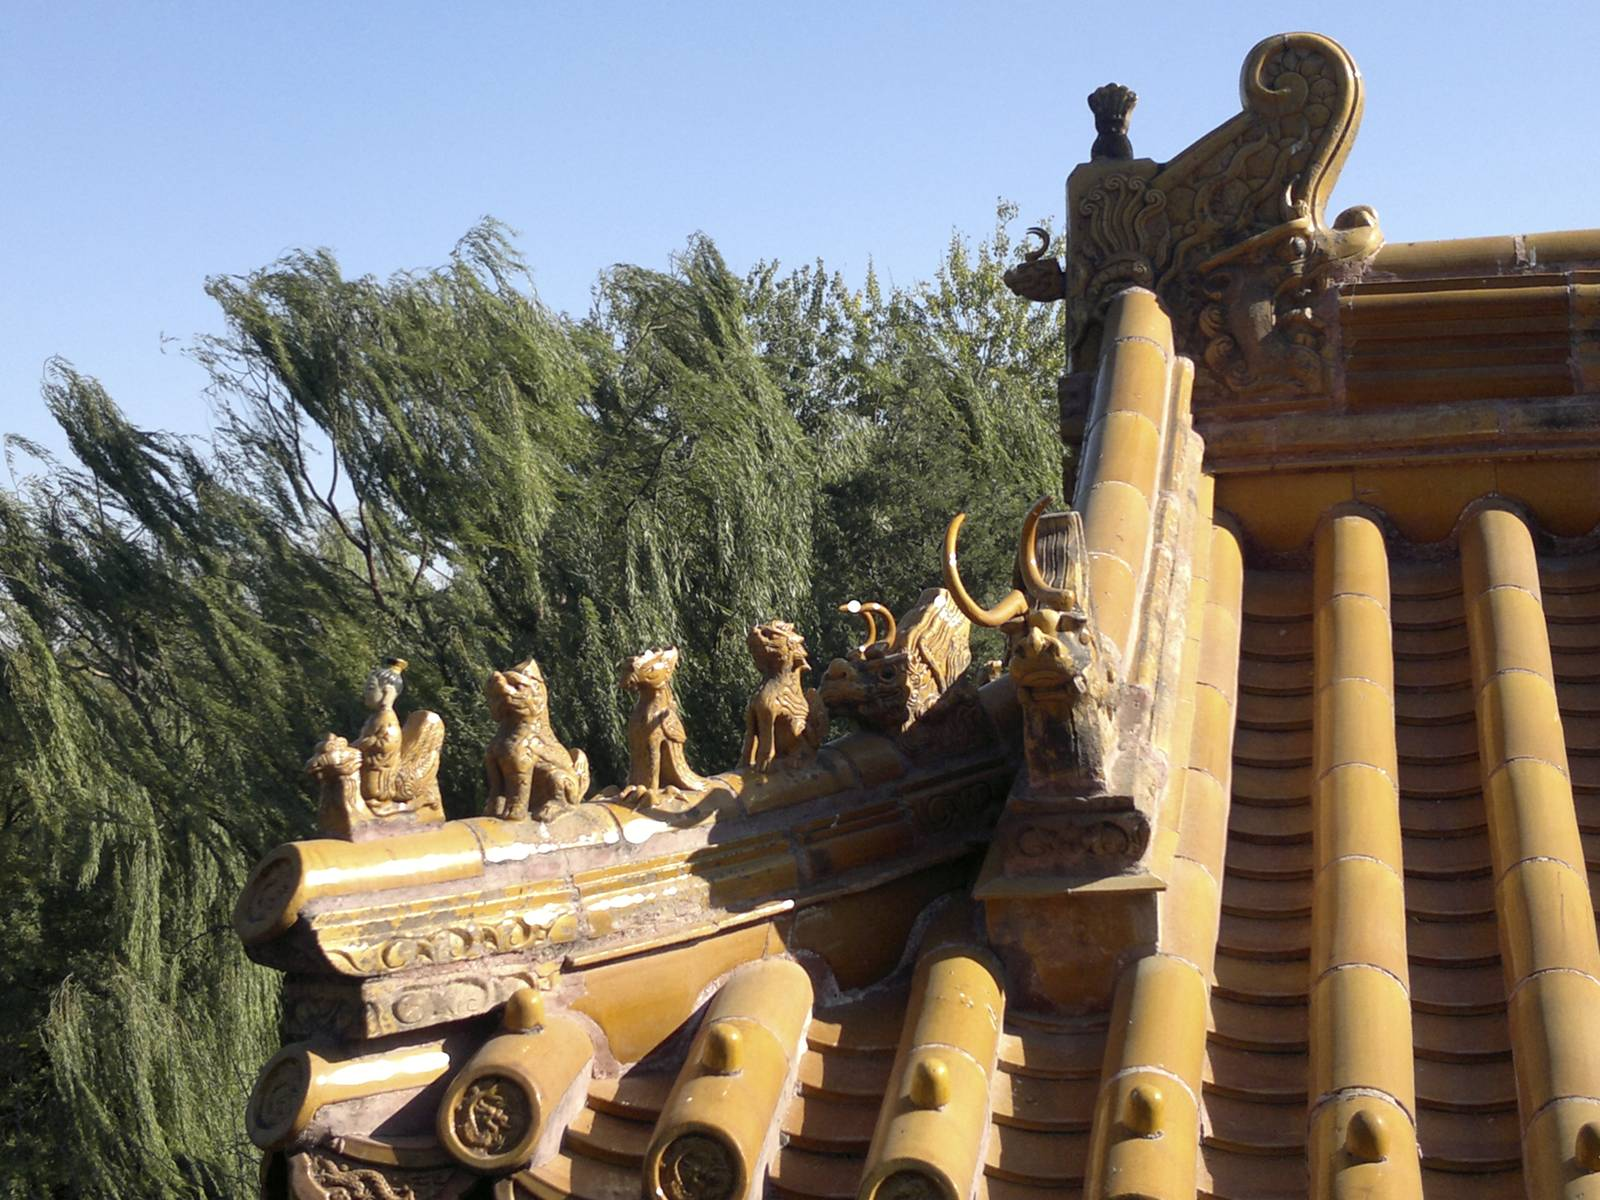 Cina-China-dragon-roof-detail-temple-pagoda